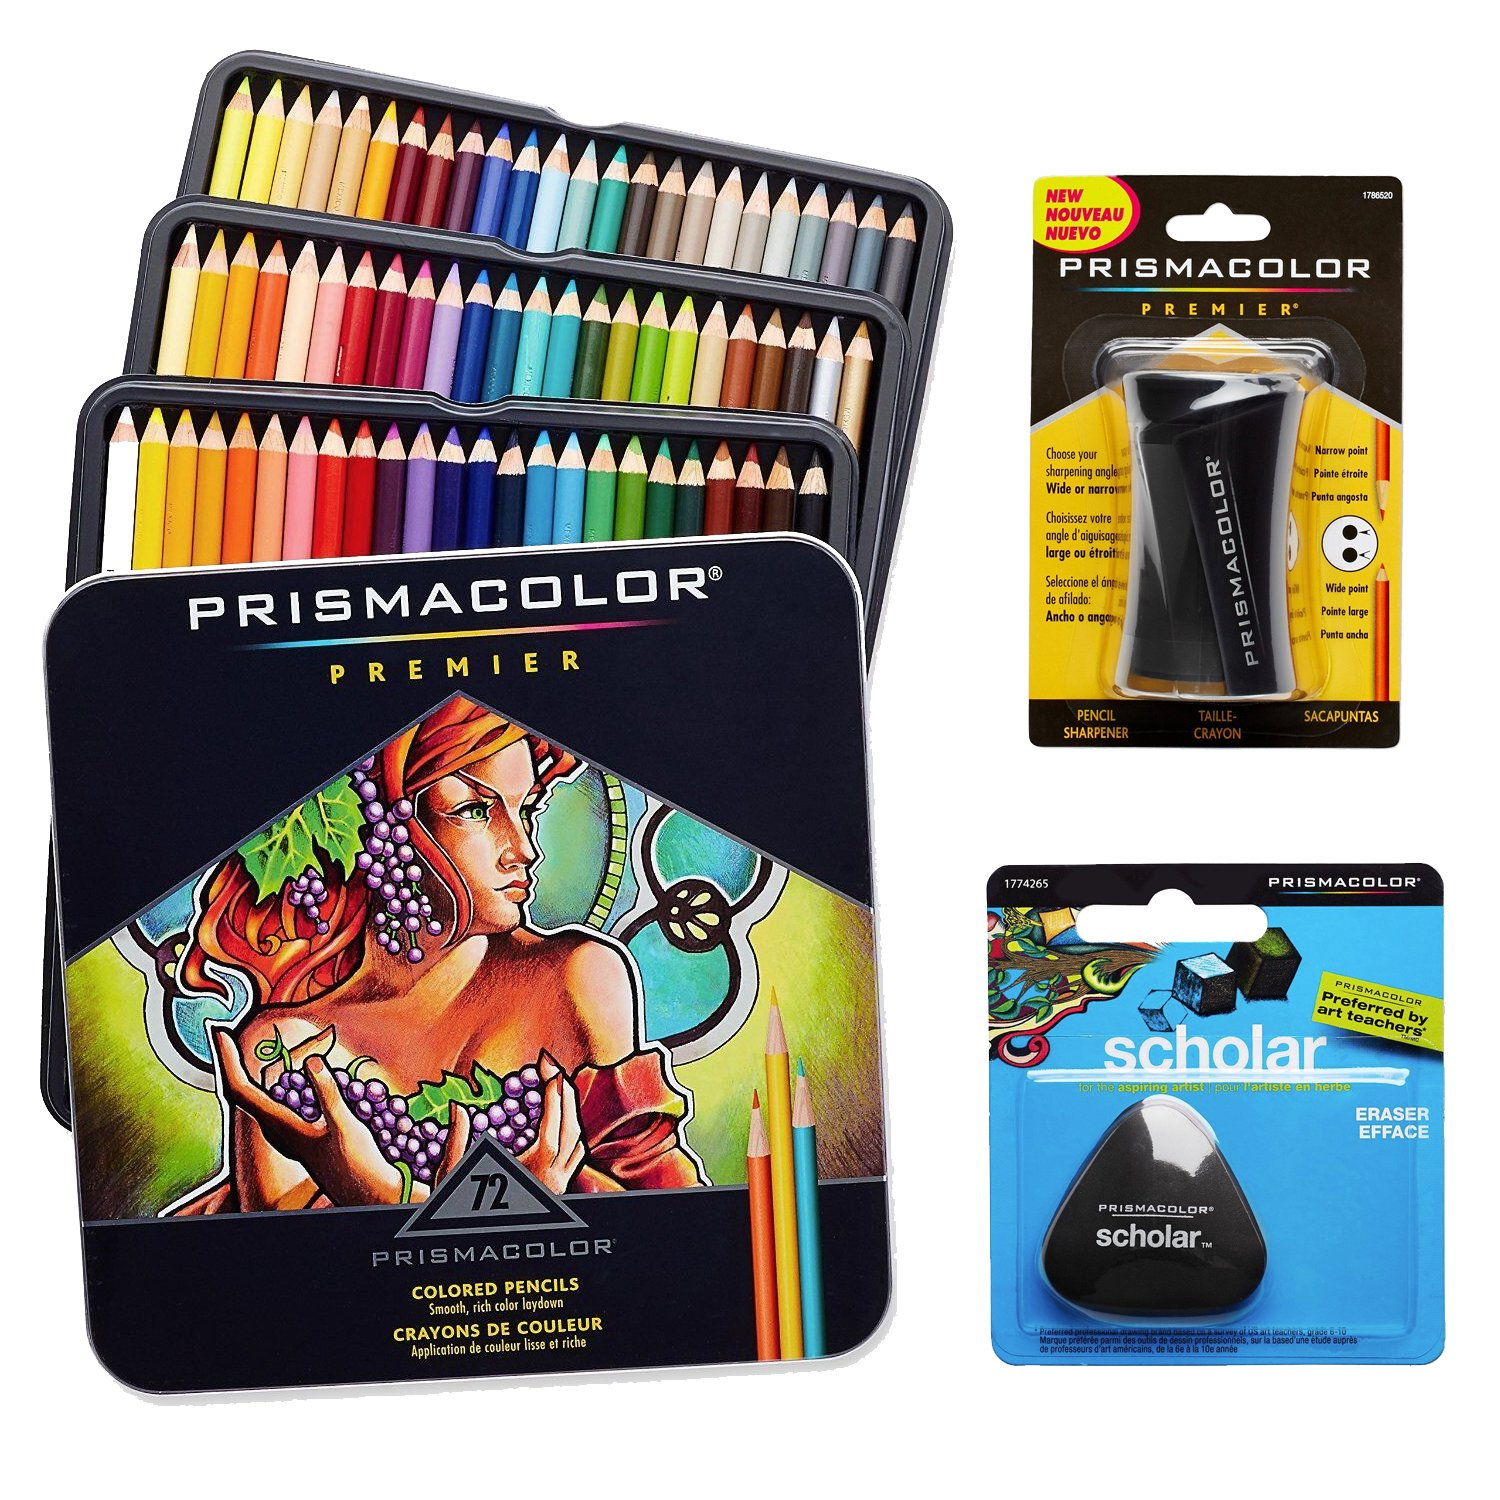 Prismacolor Colored Pencils Box of 72 Assorted Colors, Triangular Scholar Pencil Eraser and Premier Pencil Sharpener